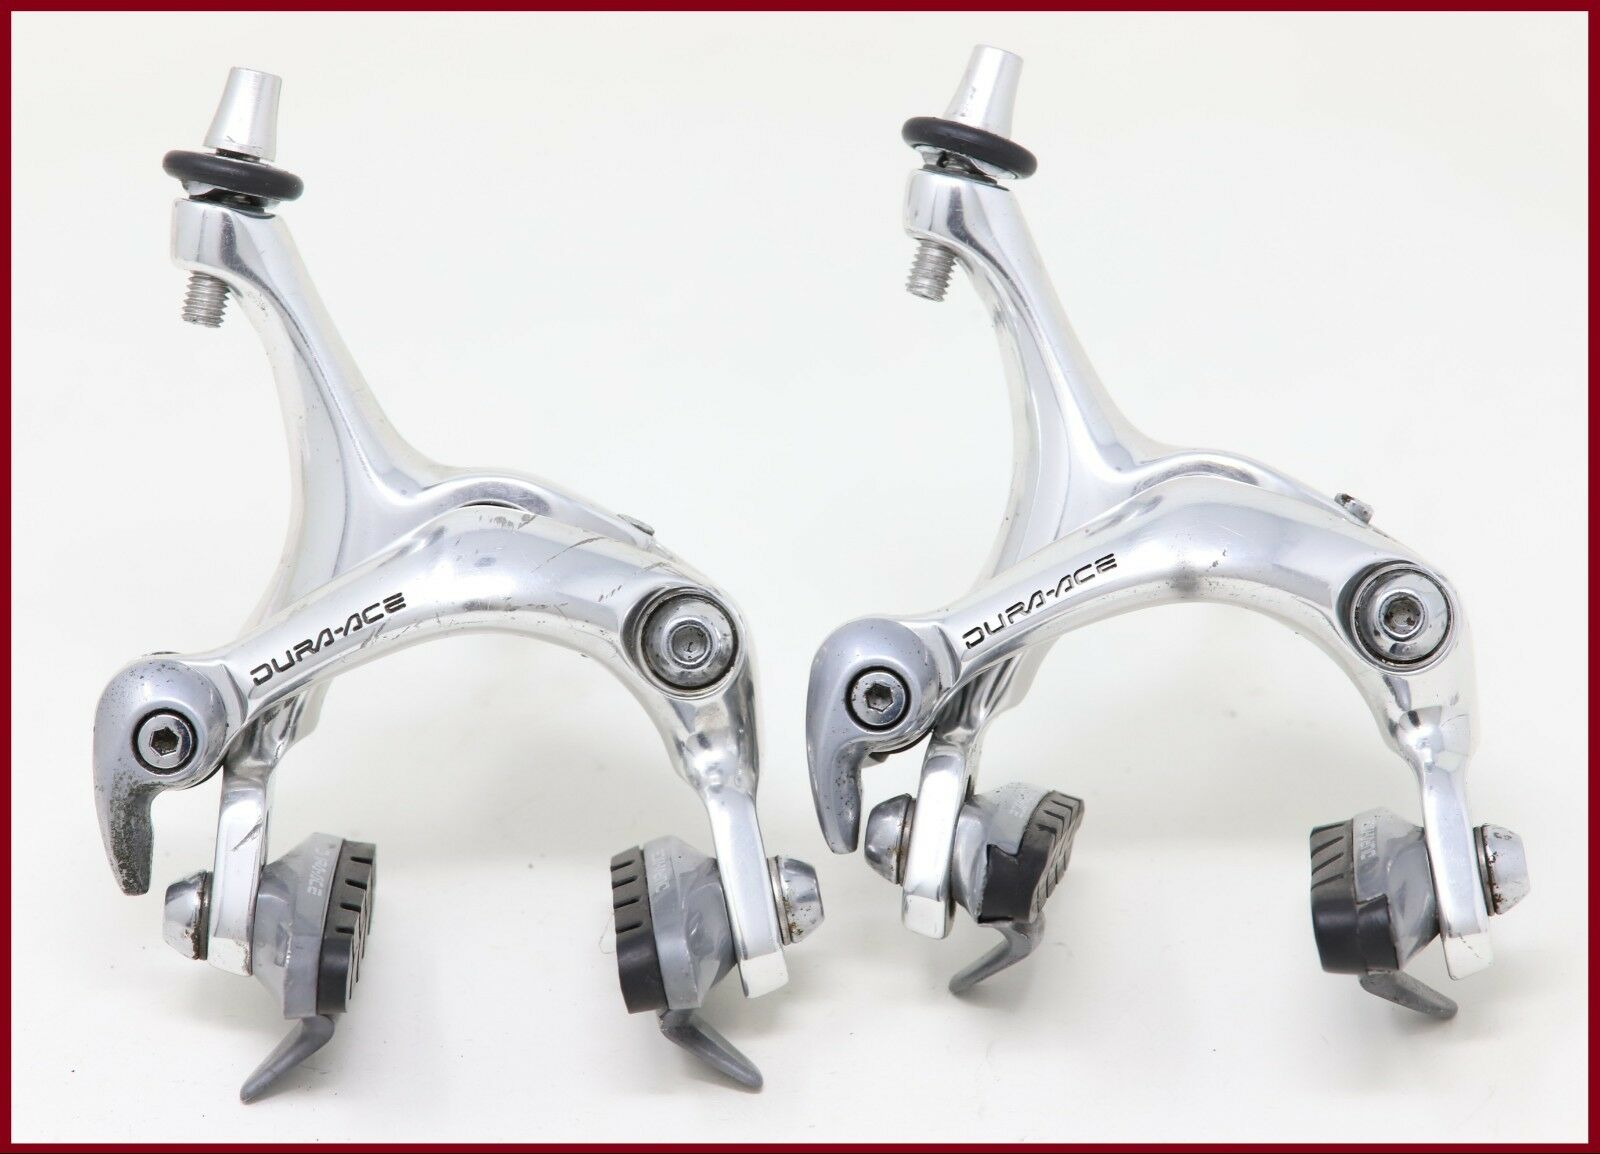 SHIMANO DURA-ACE BR-7403 BRAKE CALIPERS BRAKES  EARLY 90s VINTAGE  online retailers